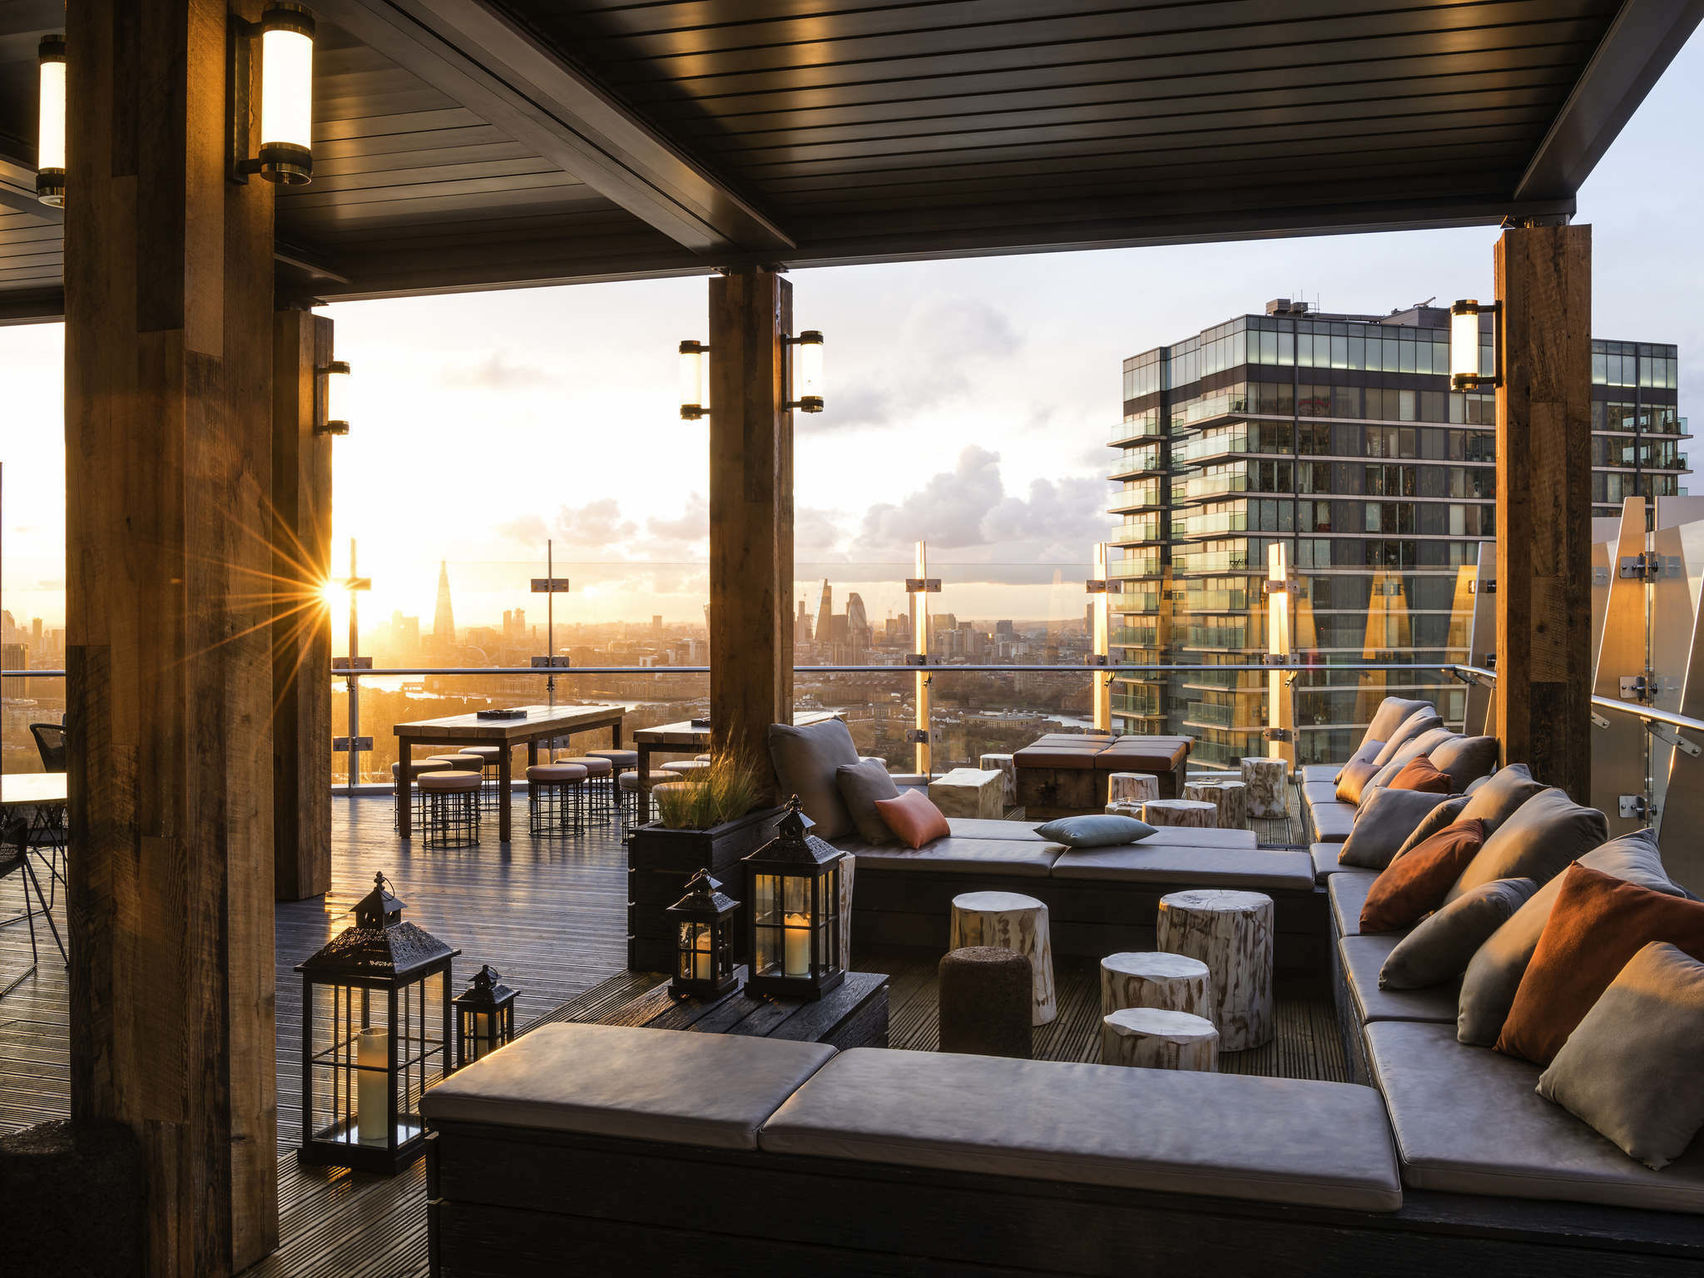 A covered rooftop bar overlooking Canary Wharf